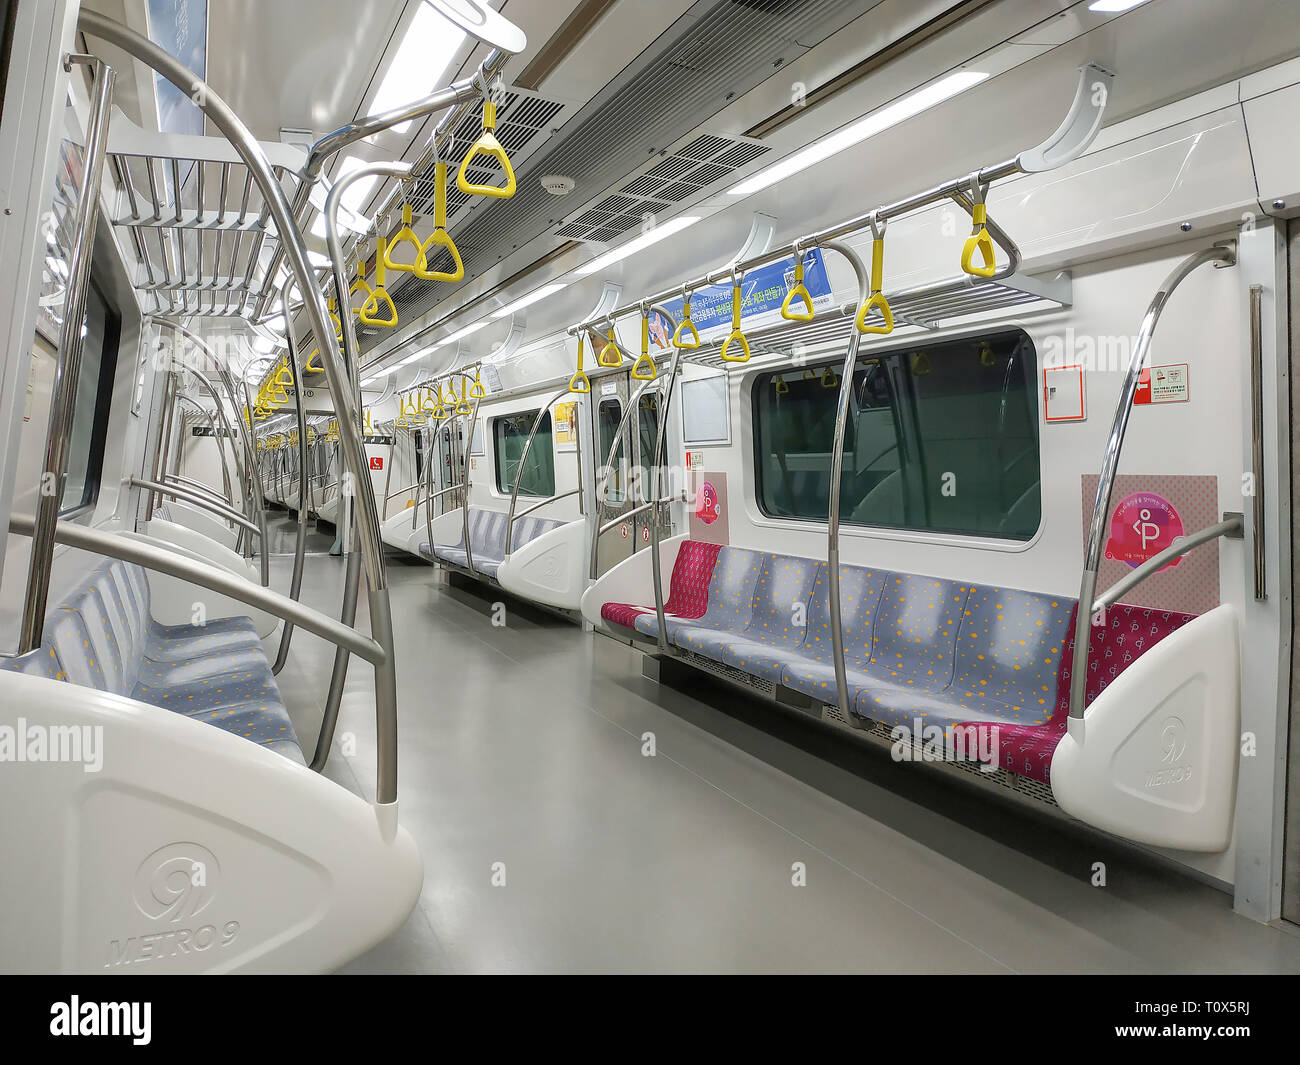 Seoul, South Korea - March 22, 2019: Inside the Train at the Underground Seoul Subway Line 9 Stock Photo